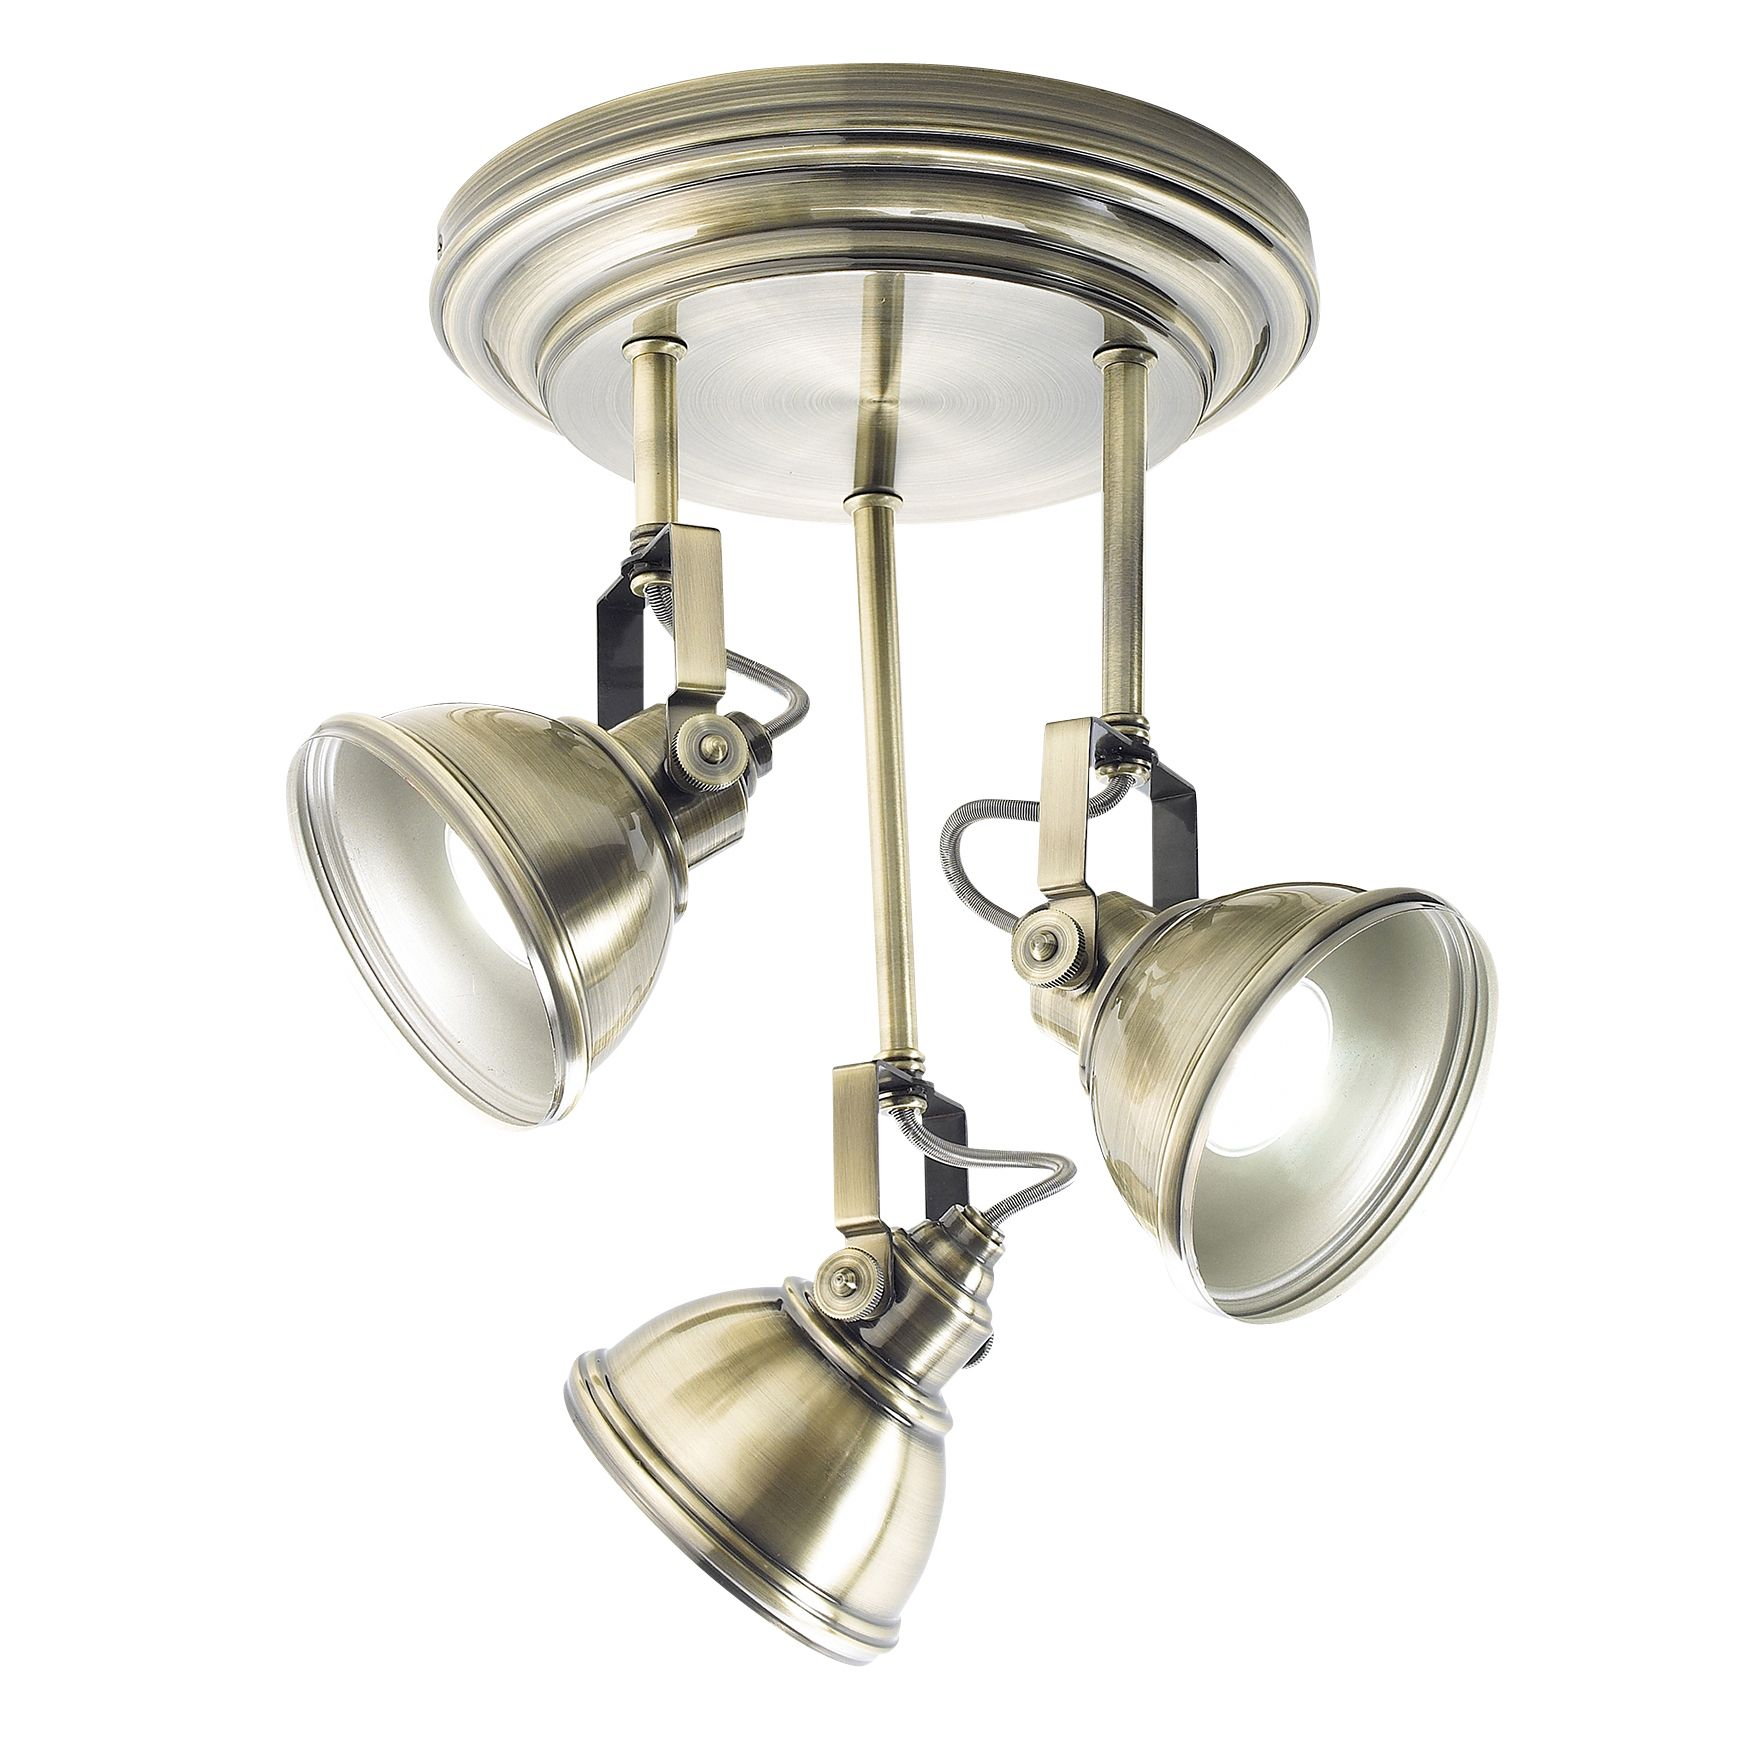 Uncategorized Bq Kitchen Lighting Jamesmcavoybr Home Design - Kitchen pendant lighting bandq